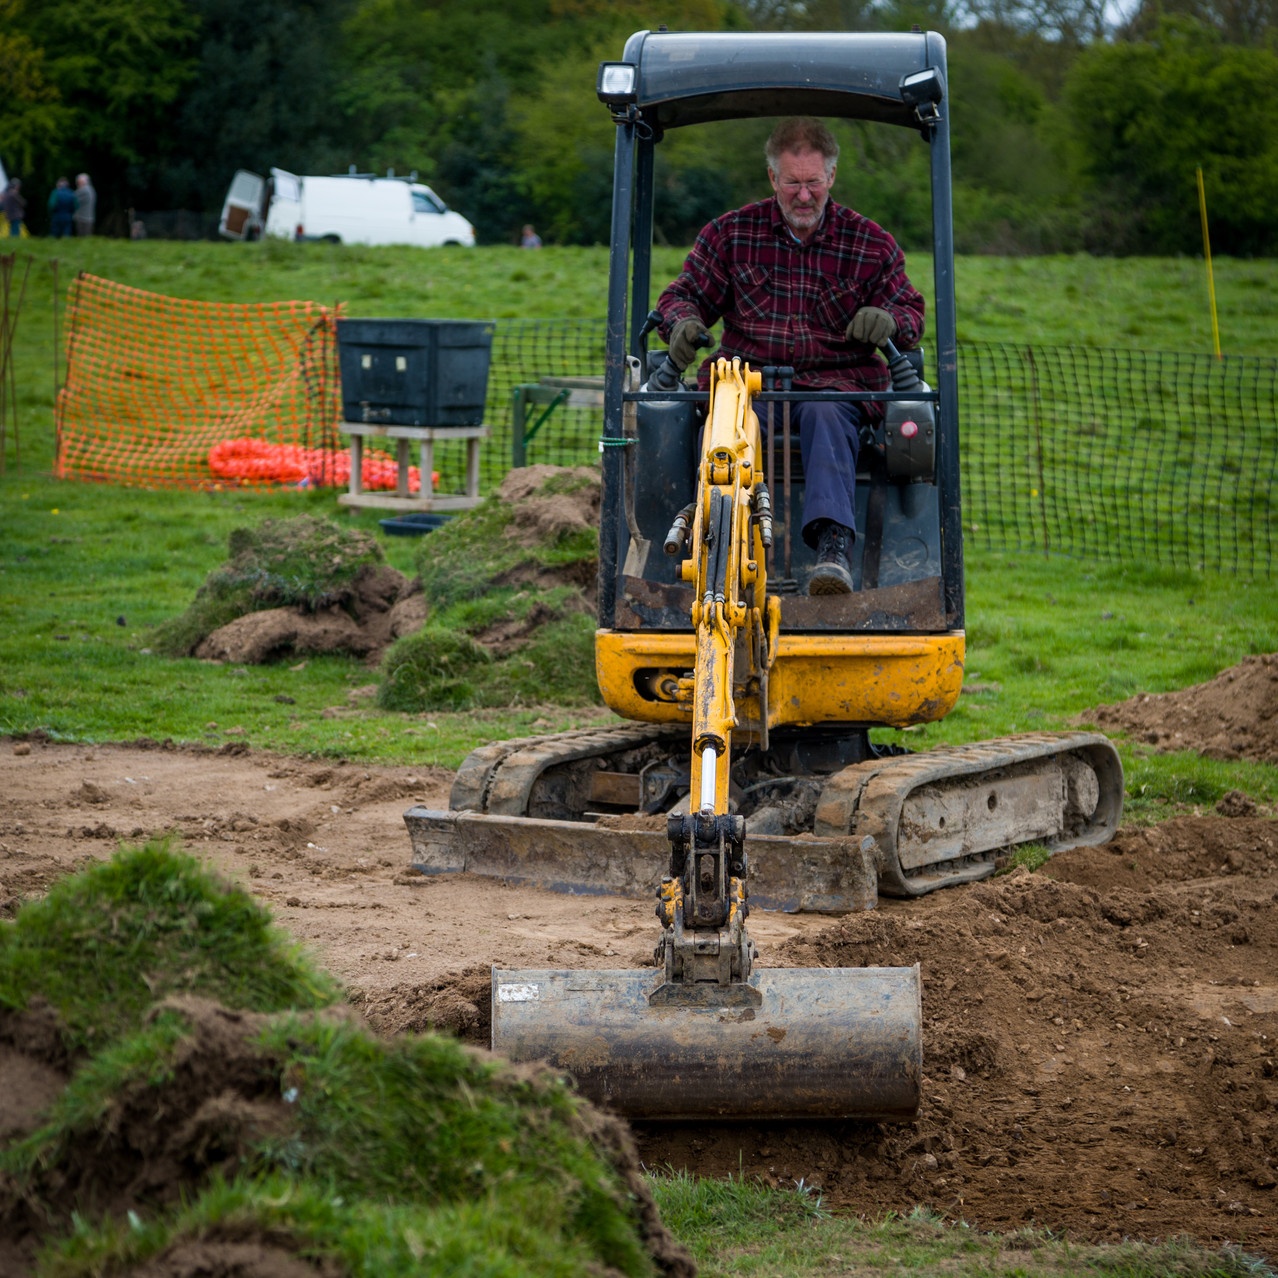 The mini-digger struggling with the hardness of the ground at the moment.